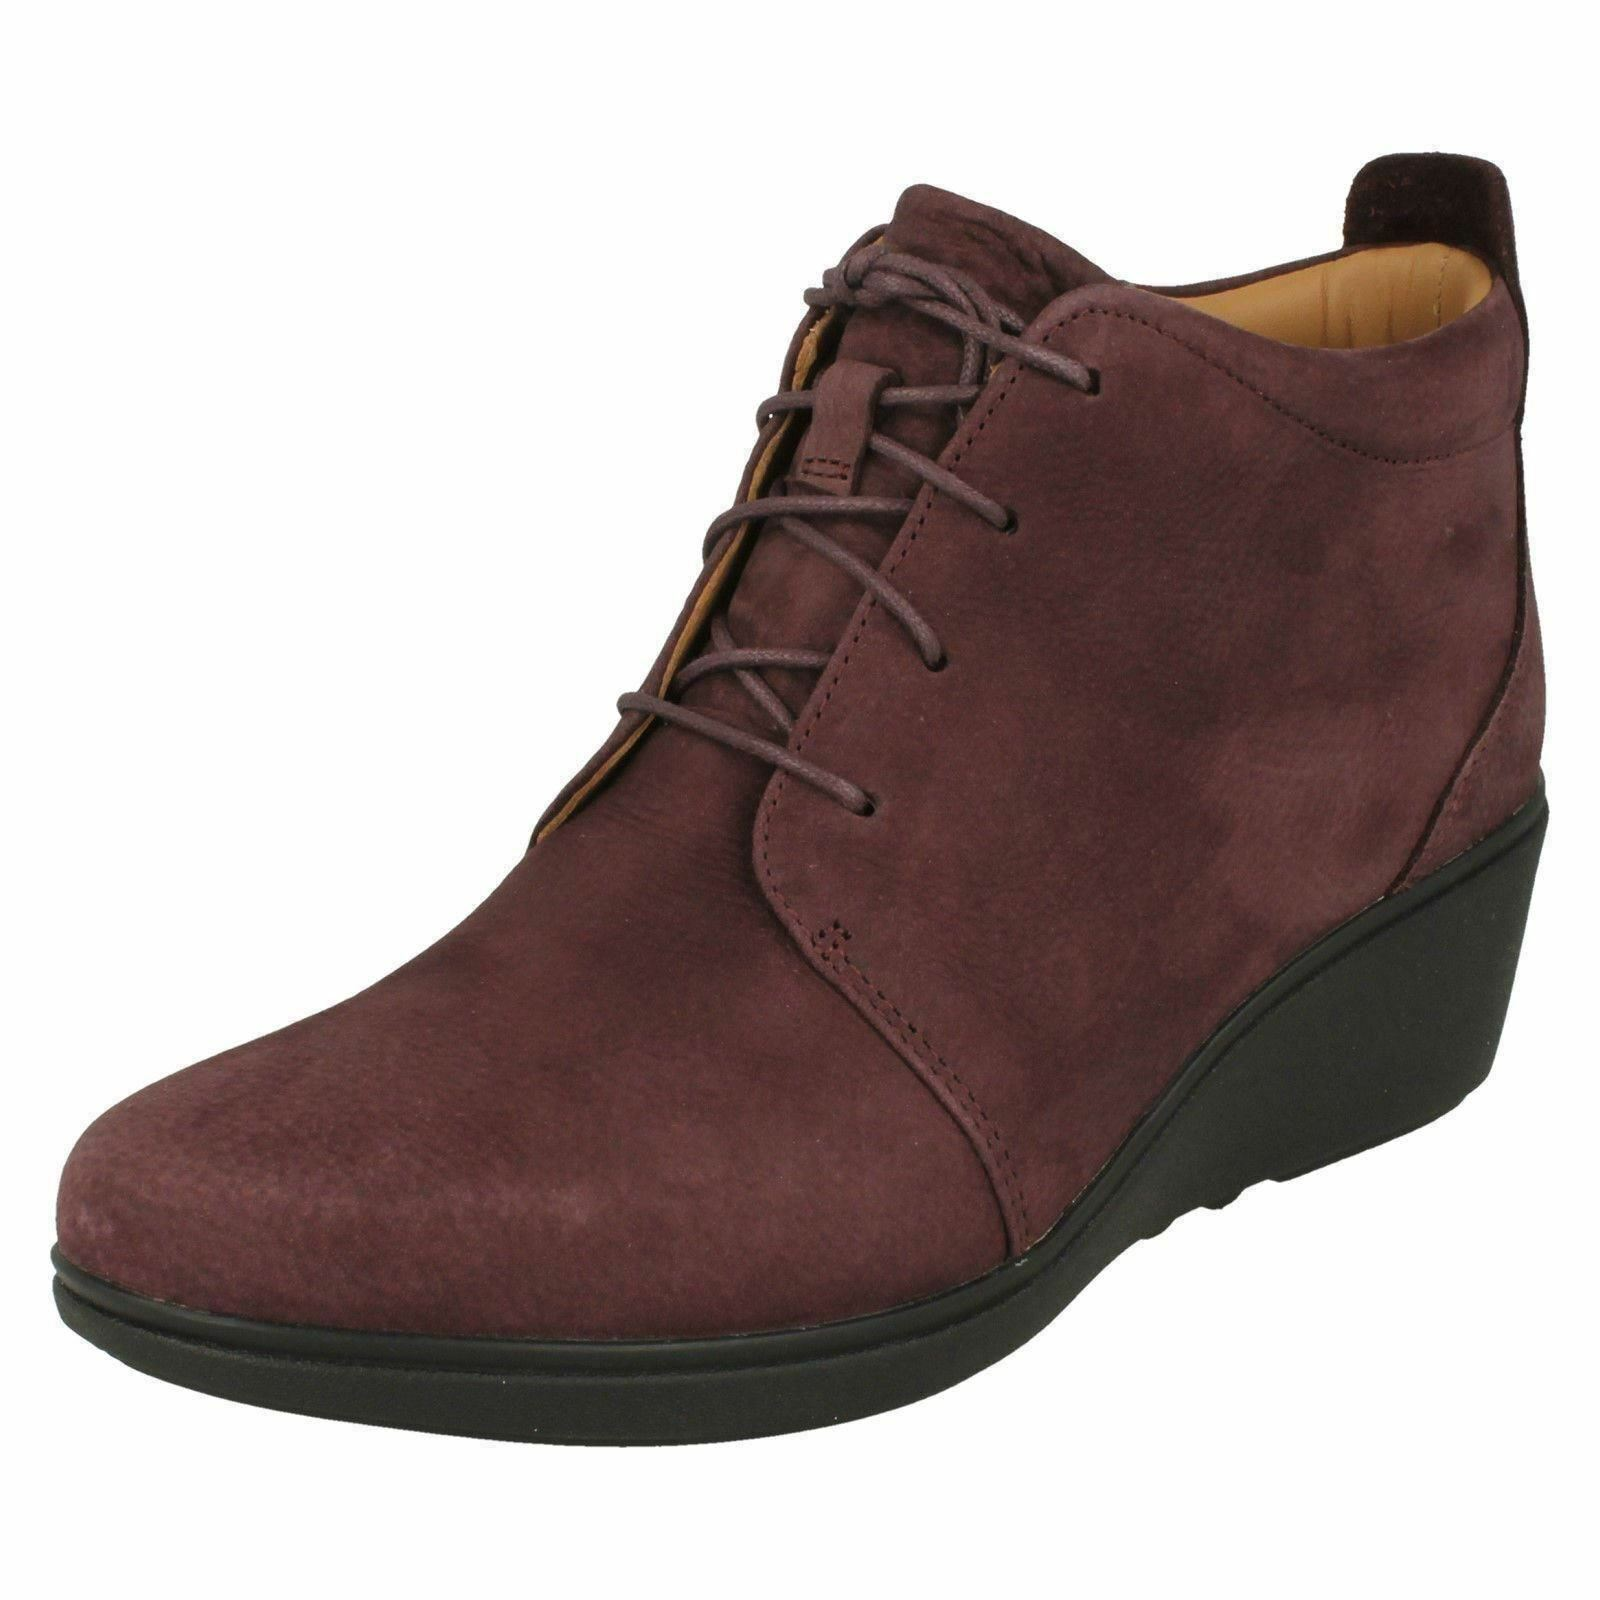 Ladies Clarks Low Wedged Heeled Lace Up Leather Leather Leather Ankle Boots Un sizera Eva 28a015